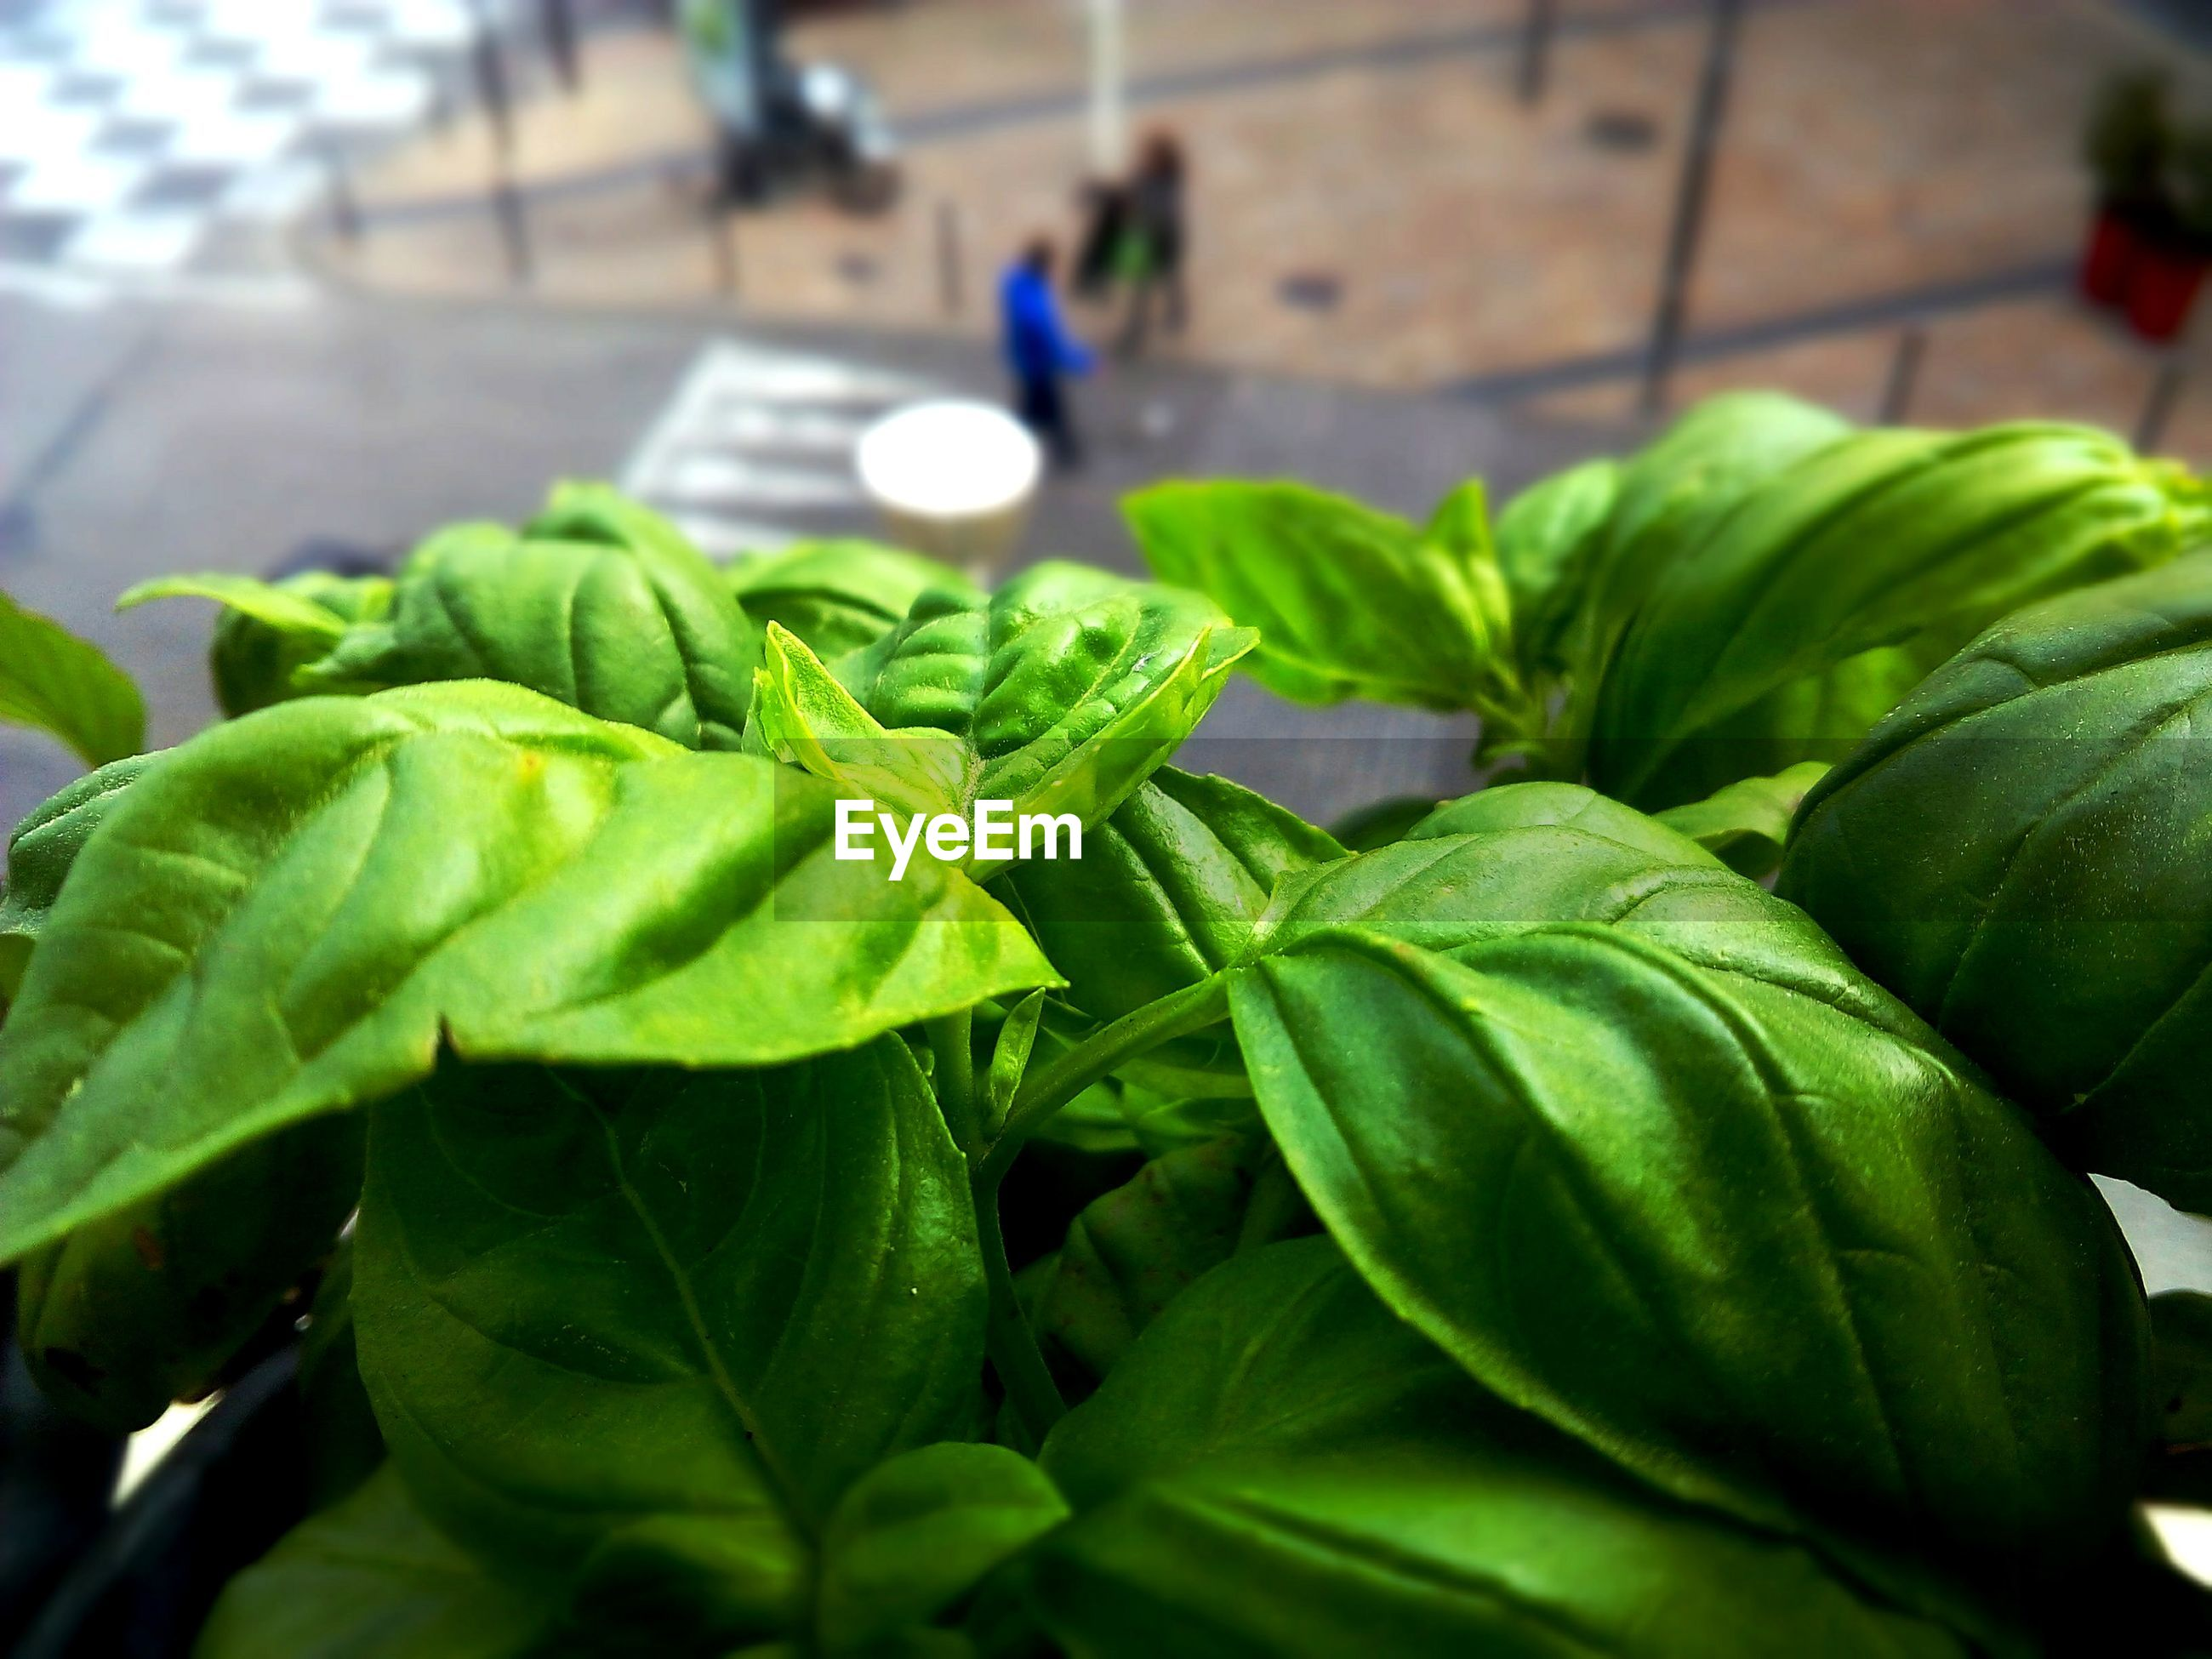 green color, leaf, focus on foreground, close-up, freshness, plant, indoors, food and drink, selective focus, growth, green, food, vegetable, healthy eating, no people, day, table, still life, nature, potted plant